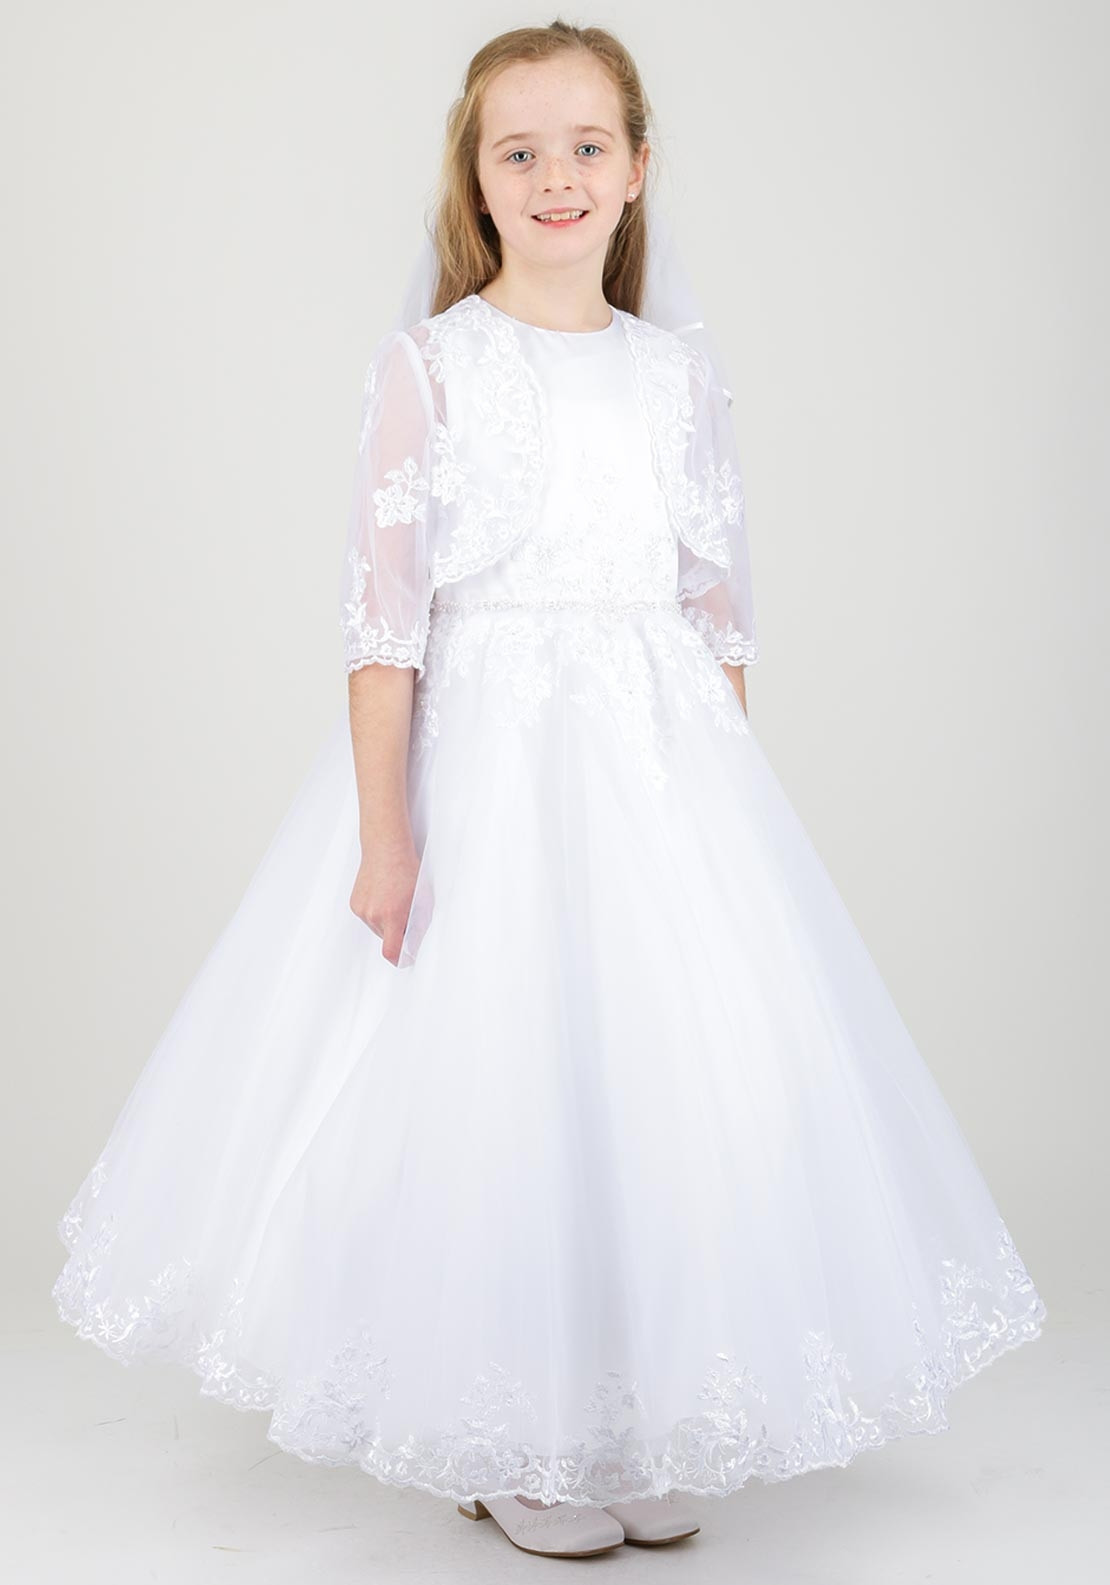 White Angel Clare Lace Detail Communion Dress, White